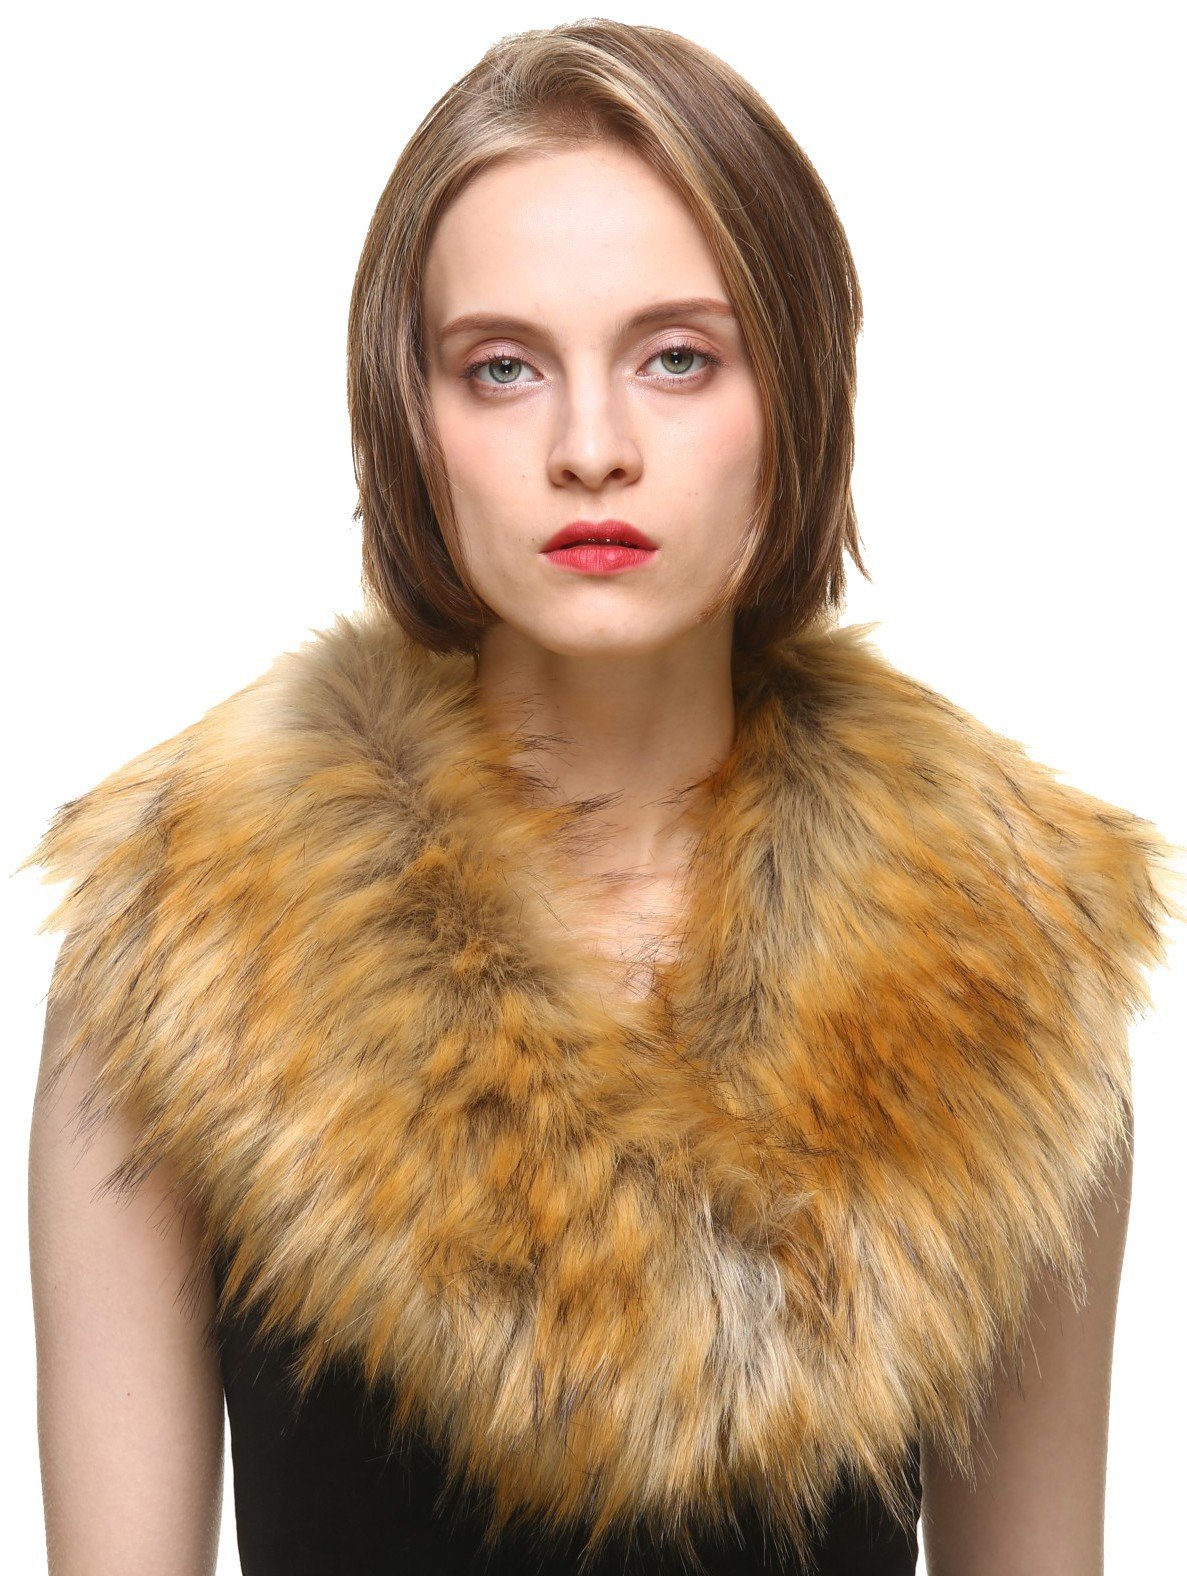 Vogueearth Faux Fur Neck Scarf For Winter Coat Collar Nature